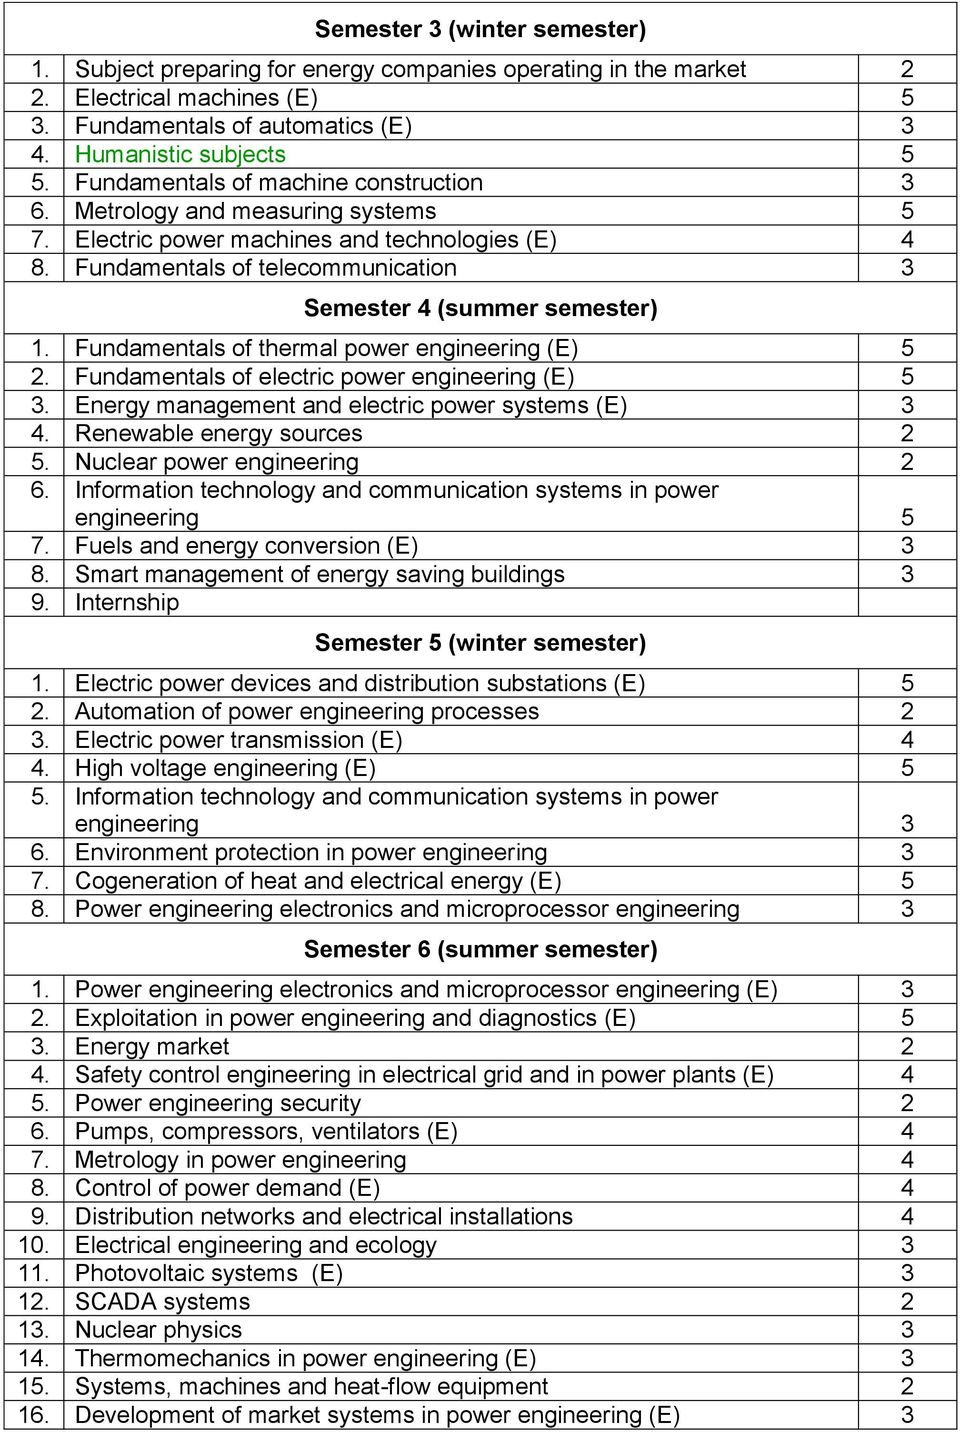 Fundamentals of thermal power engineering (E) 5 2. Fundamentals of electric power engineering (E) 5 3. Energy management and electric power systems (E) 3 4. Renewable energy sources 2 5.